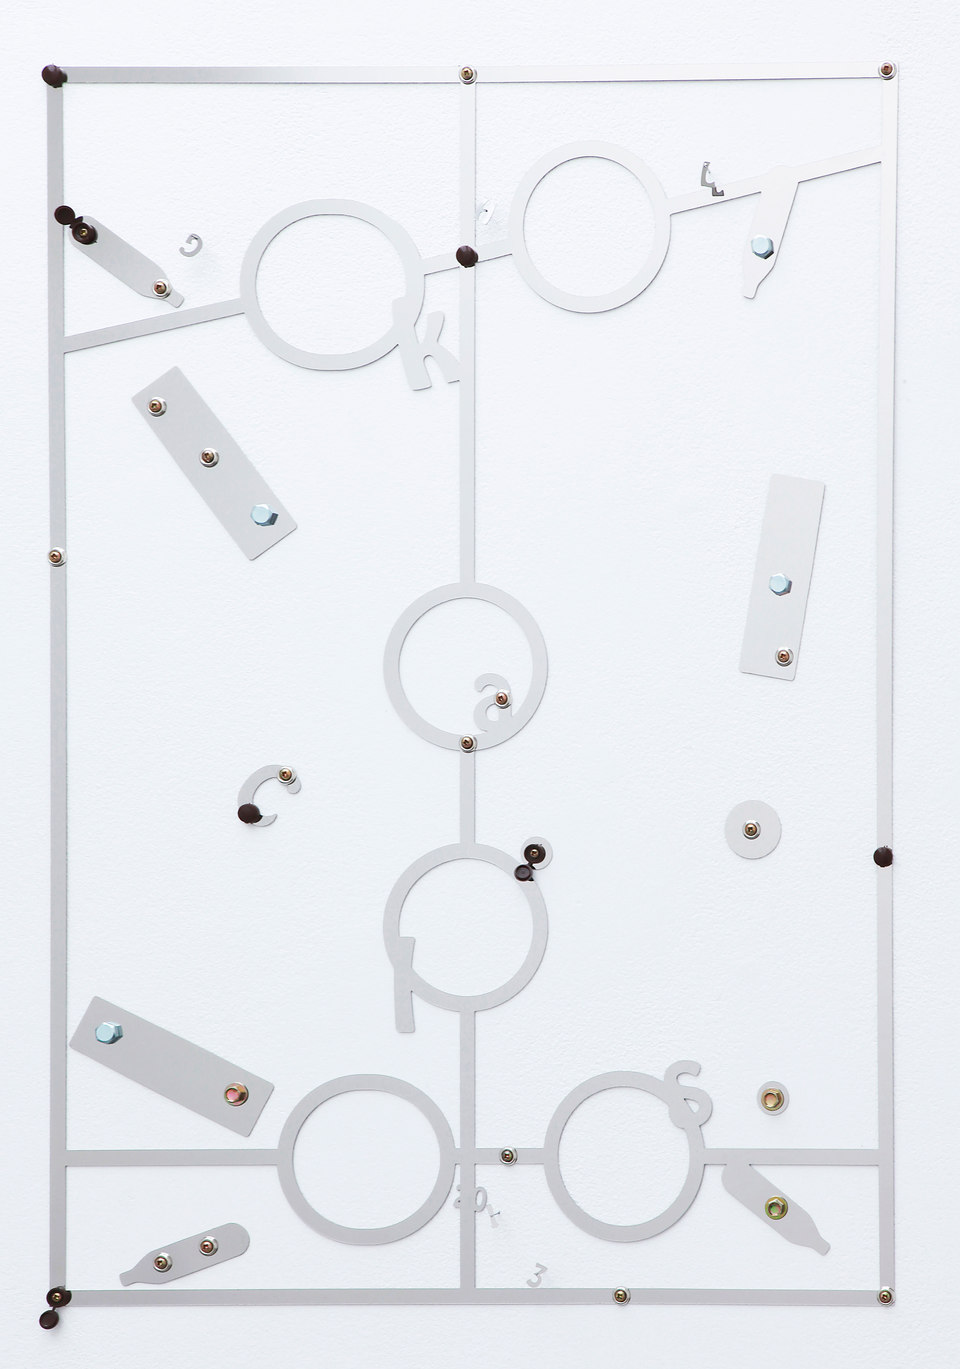 George Henry Longly, Calorie Counter (Weight Watchers), 2013, mirror polished steel, coach bolts, screws, screw caps, 55 x 80 x 1 cm, Cell Project Space